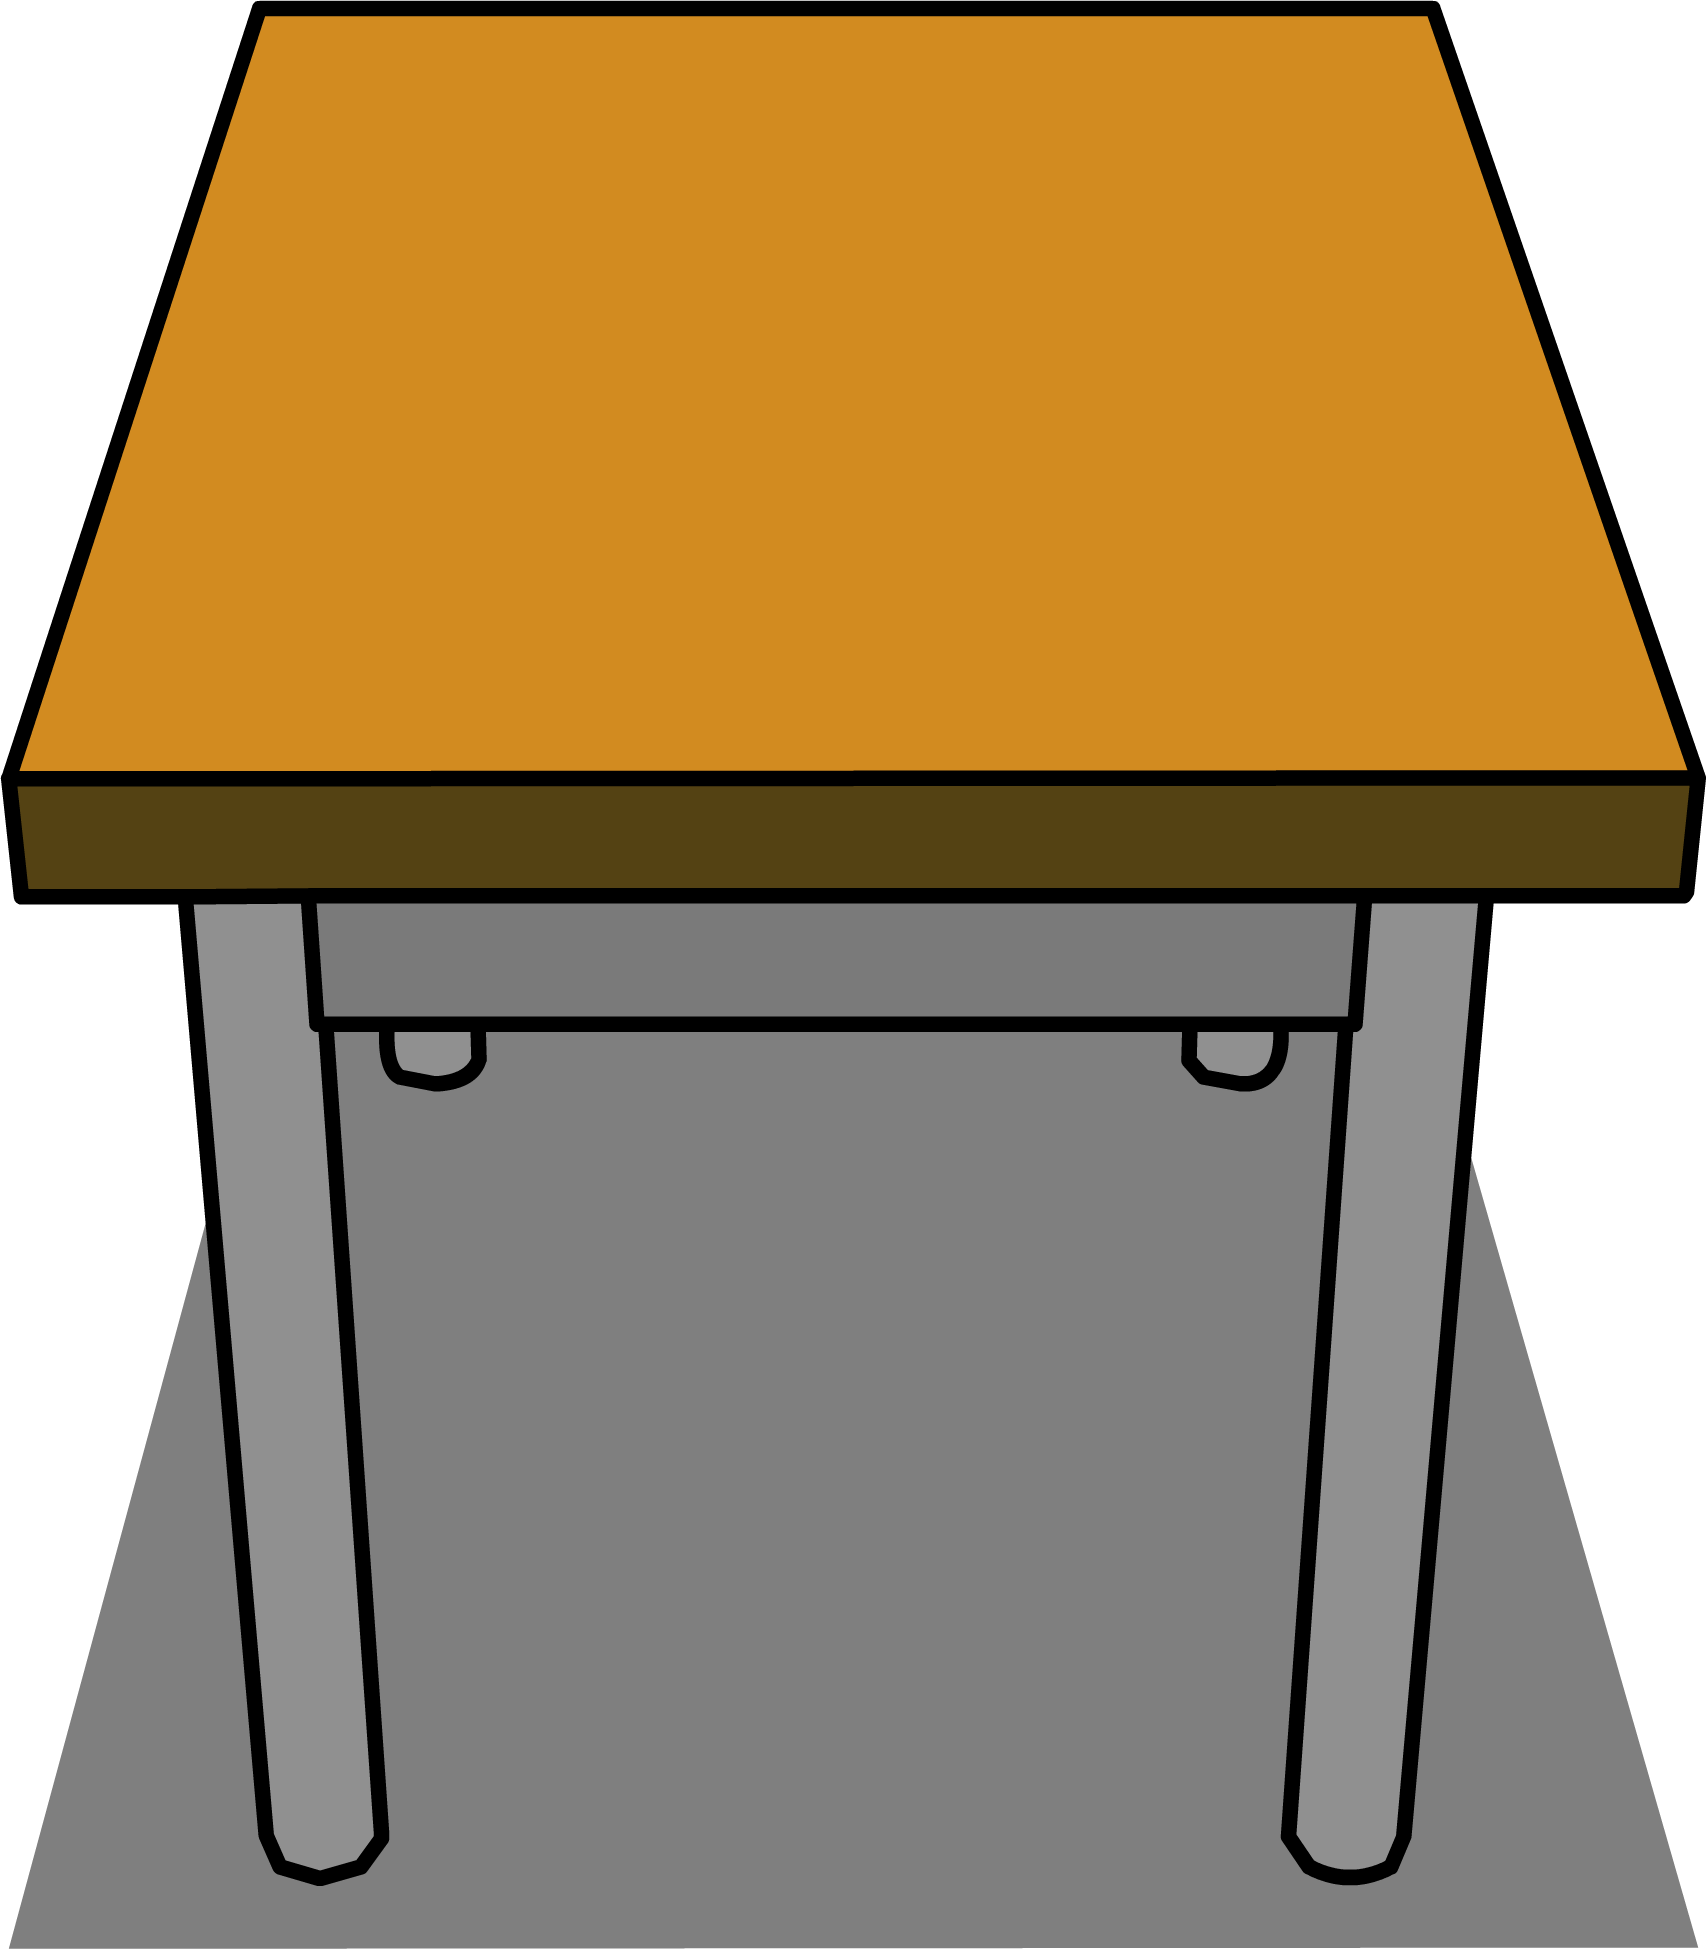 Desk clipart classroom. Image sprite png club